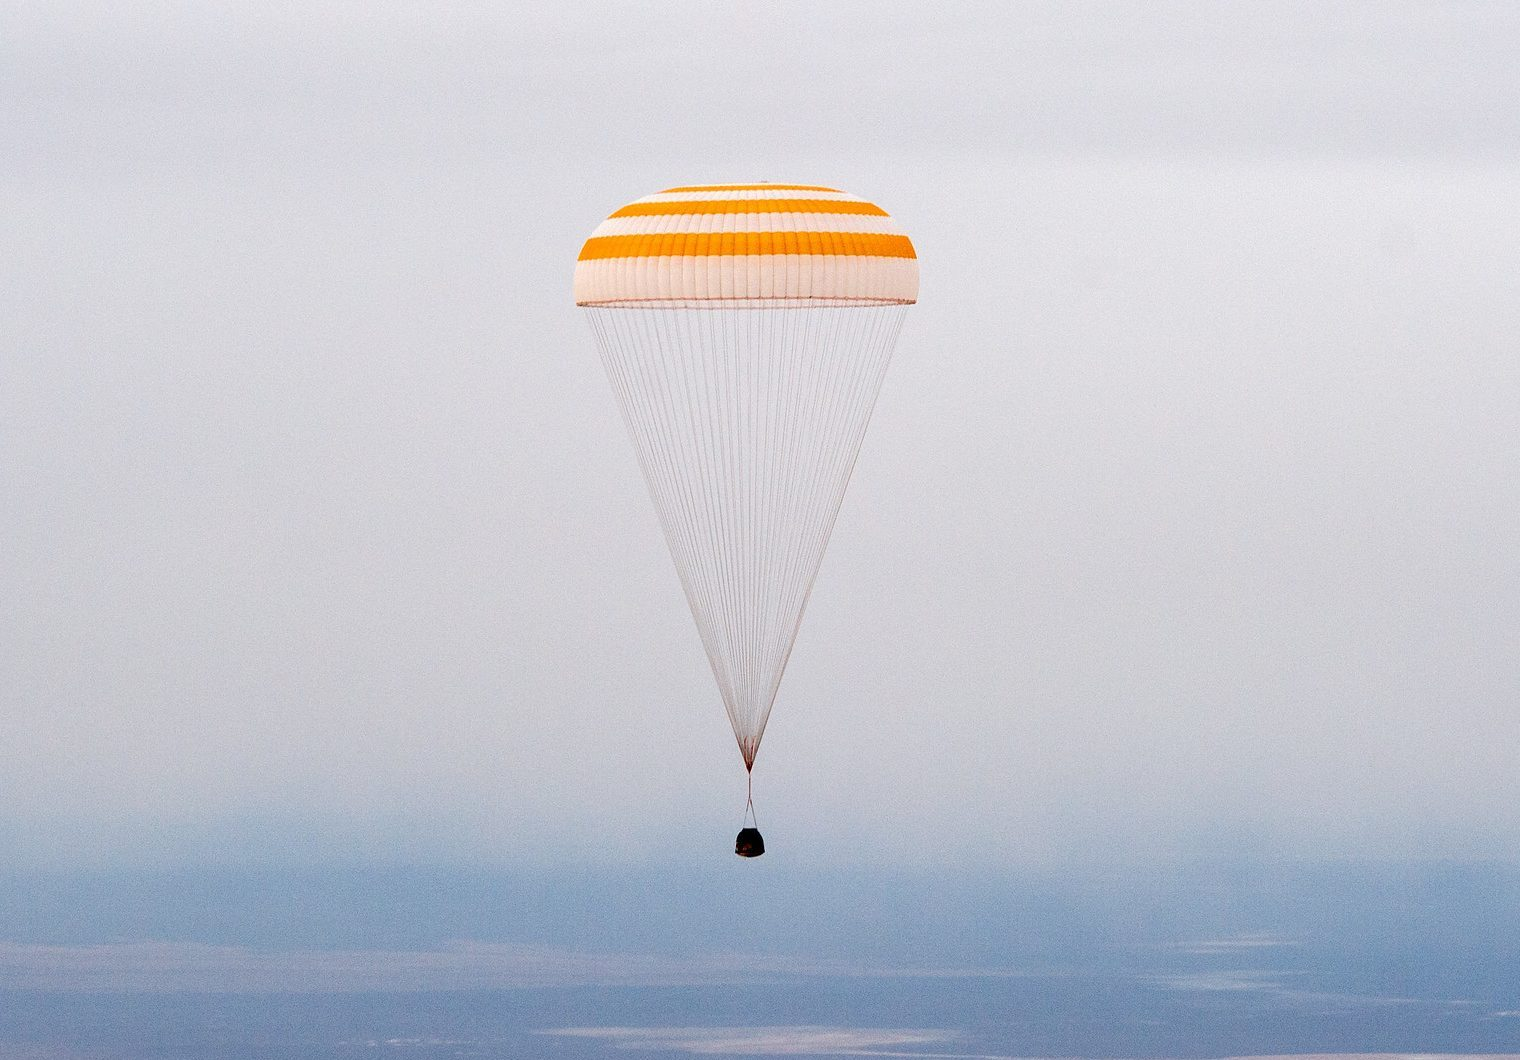 The Soyuz MS-16 spacecraft is seen as it lands in Kazakhstan with Expedition 63 crew.